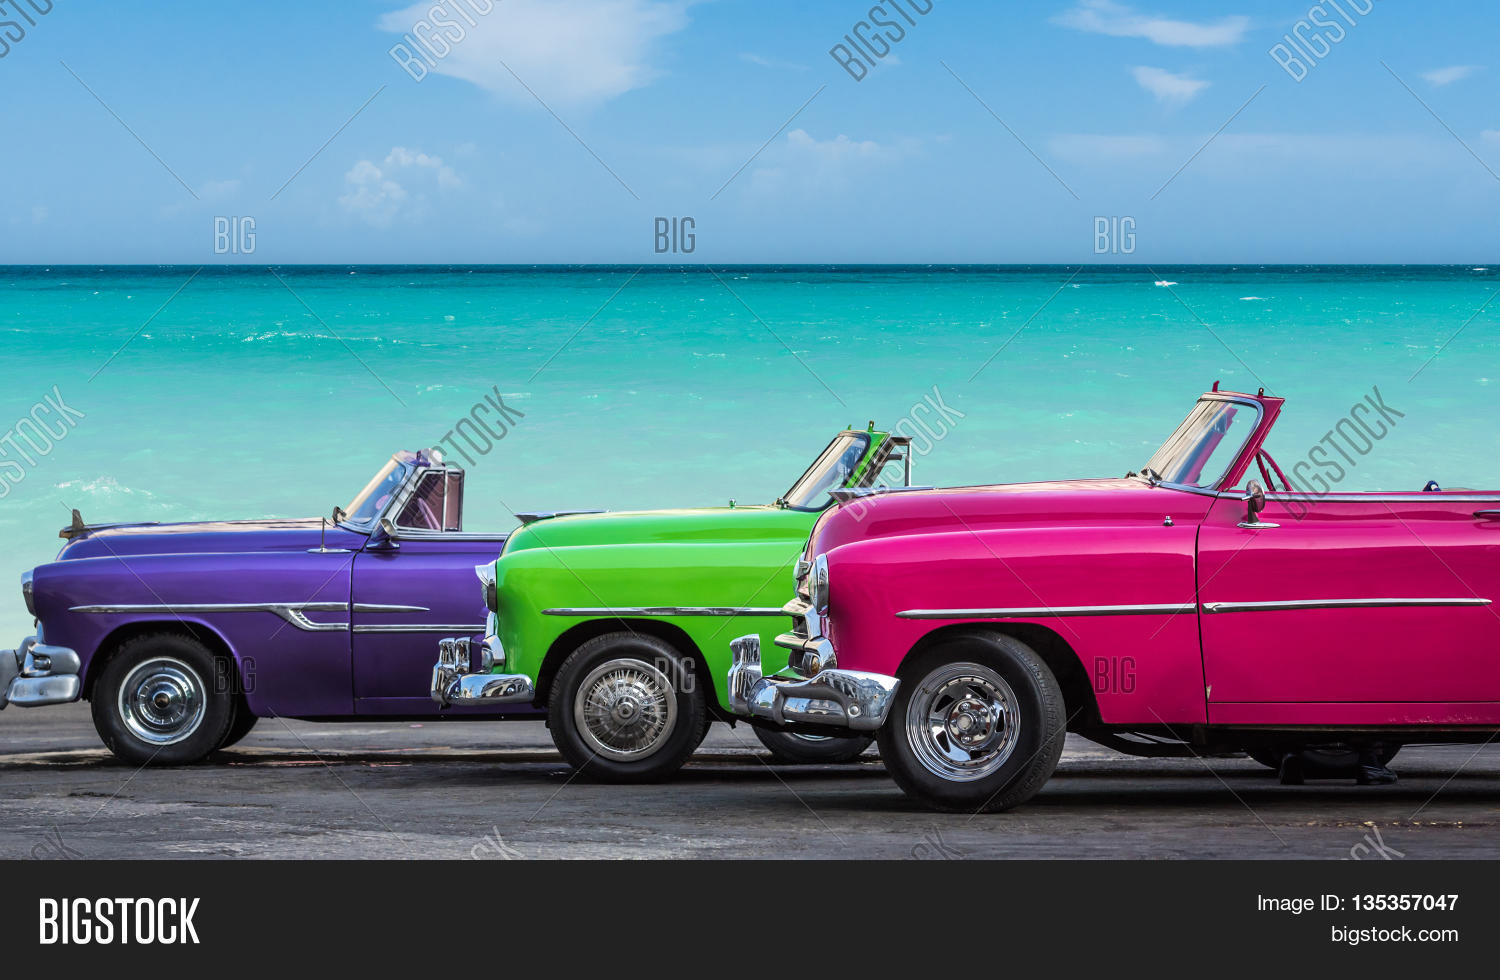 Most Beautiful American Classic Image & Photo | Bigstock